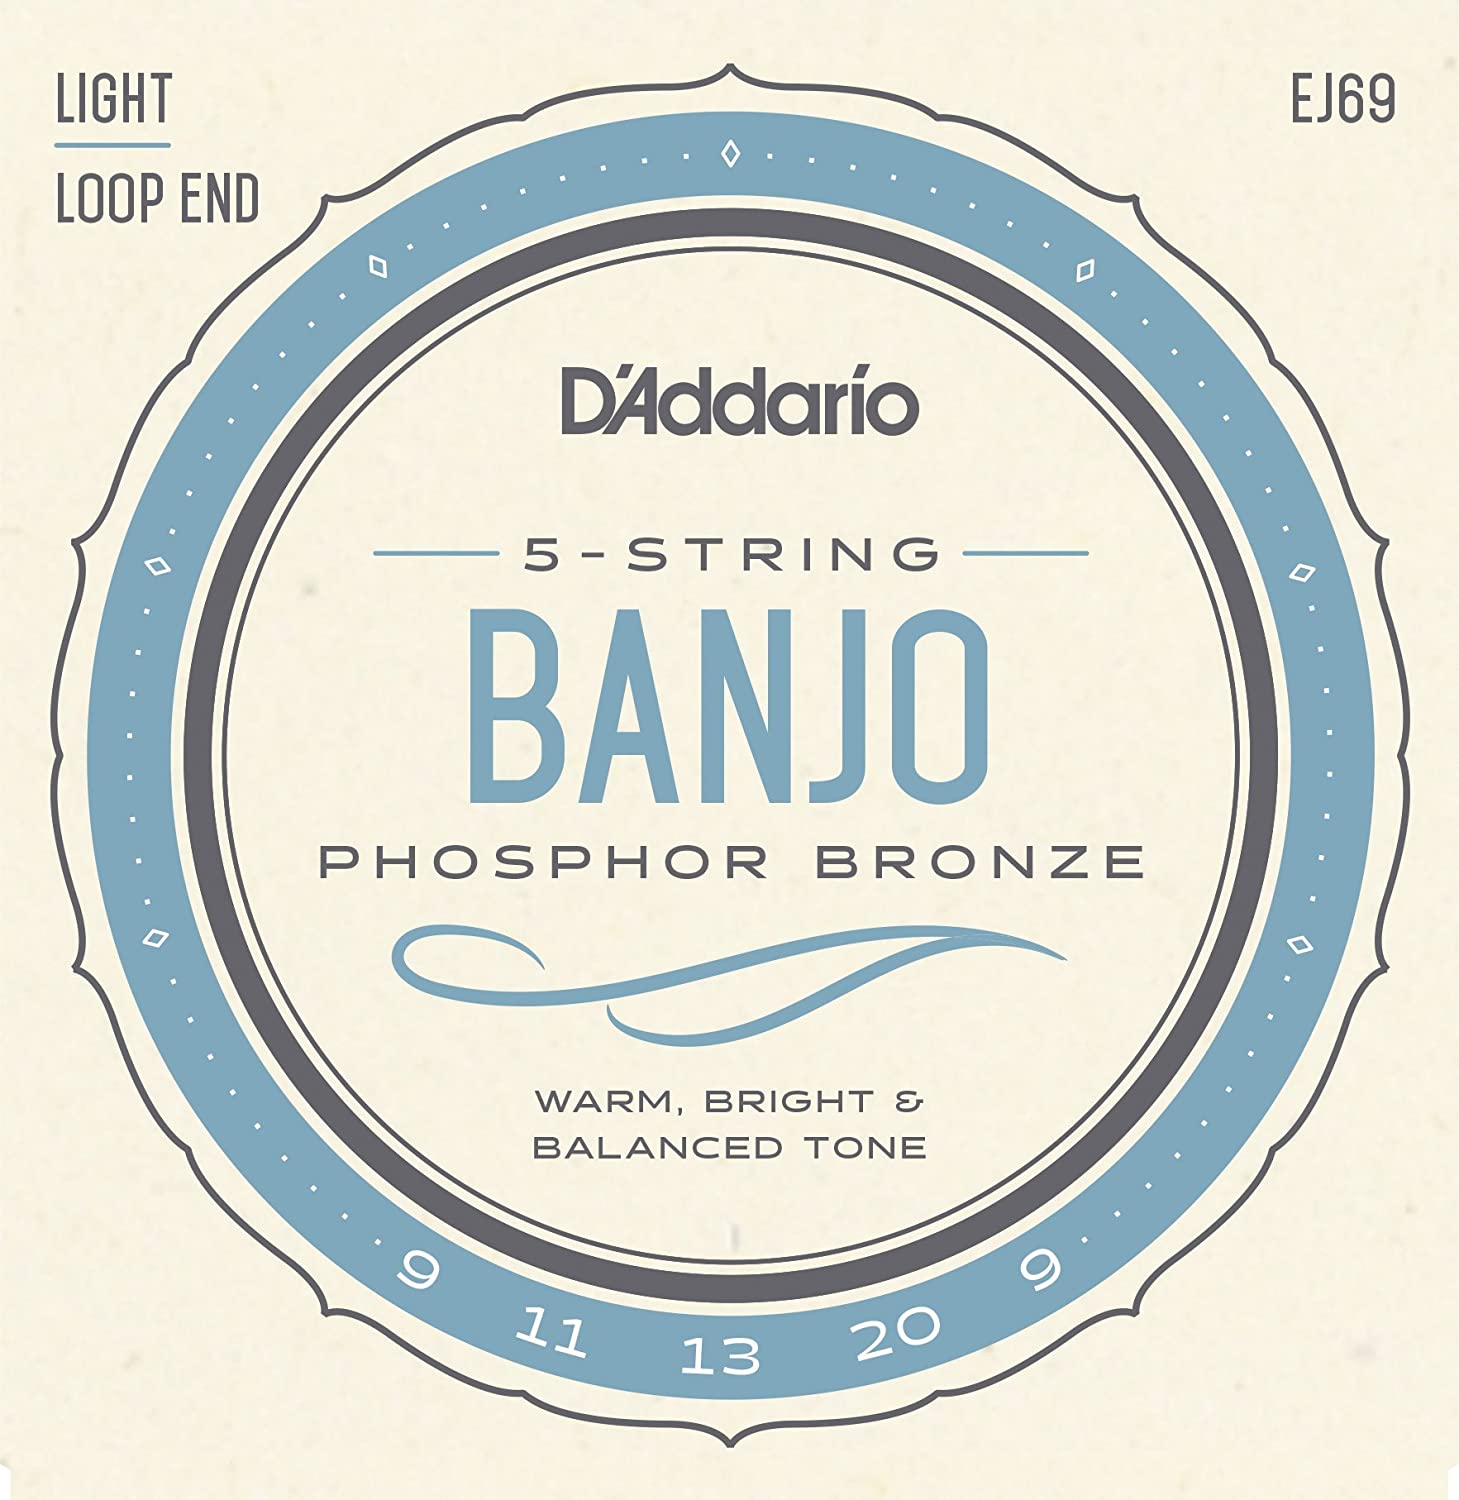 D'Addario EJ69 Phosphor Bronze 5-String Banjo Strings, Light, 9-20 D'Addario